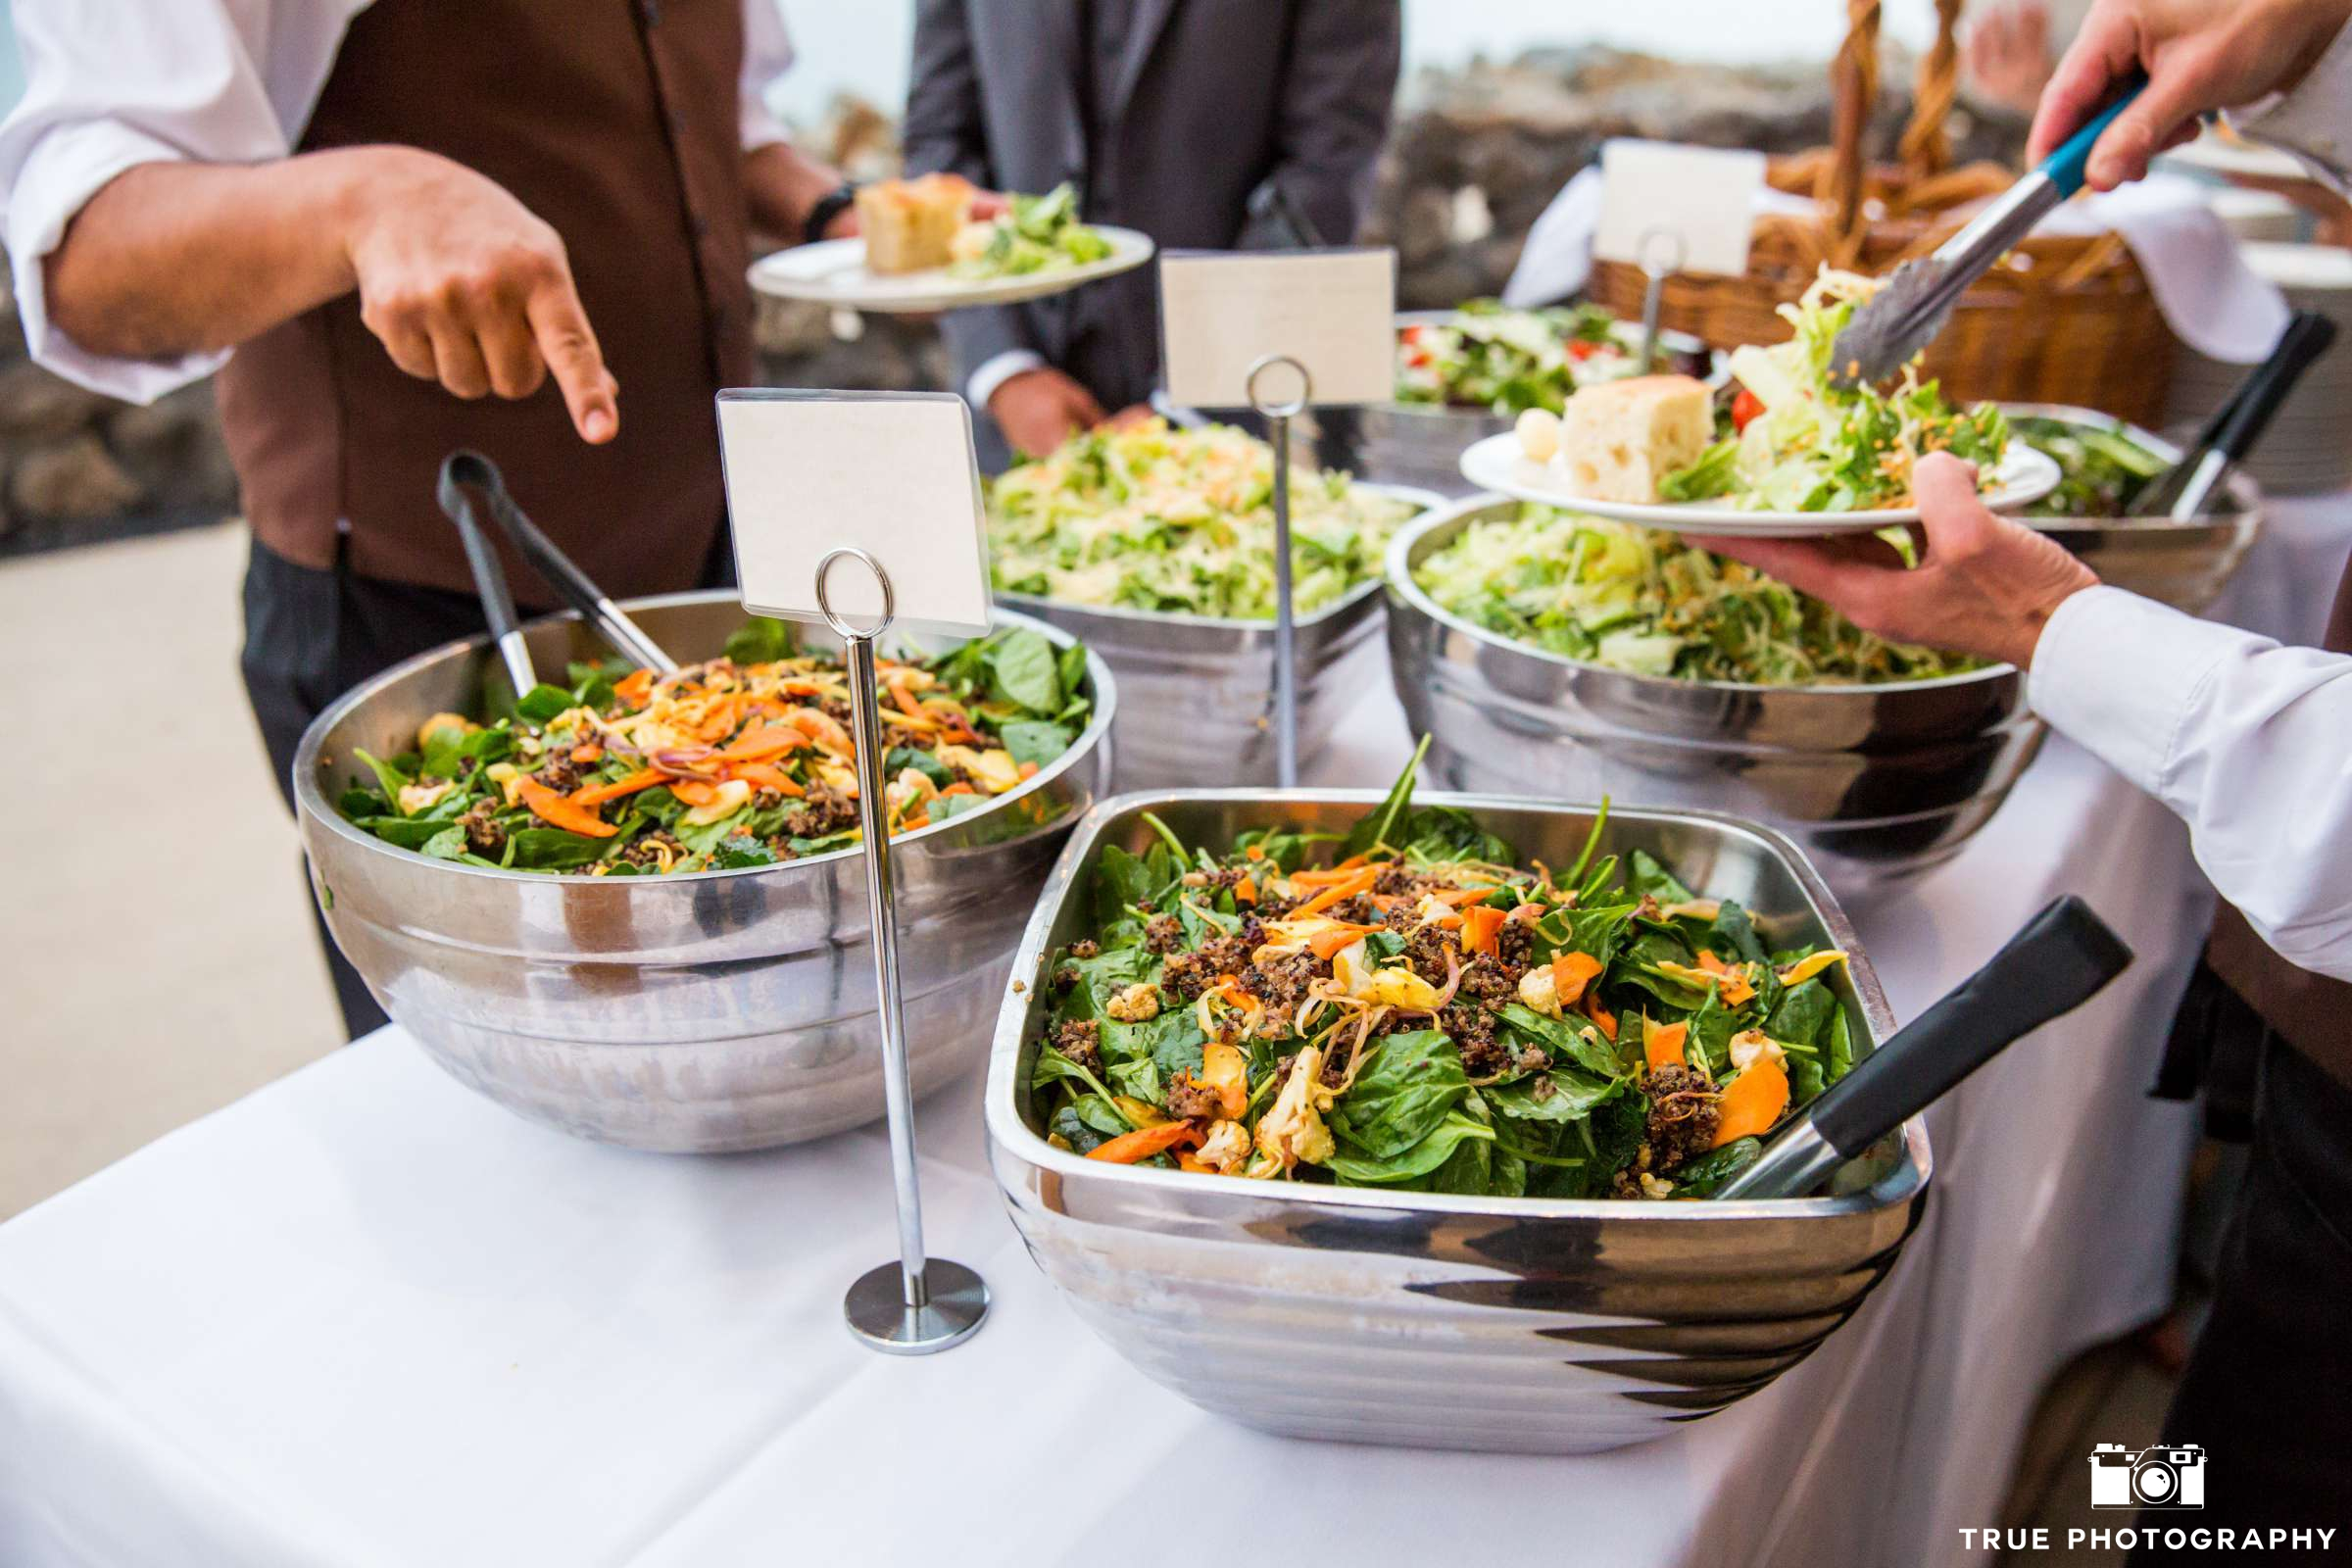 Various salads being served at an event